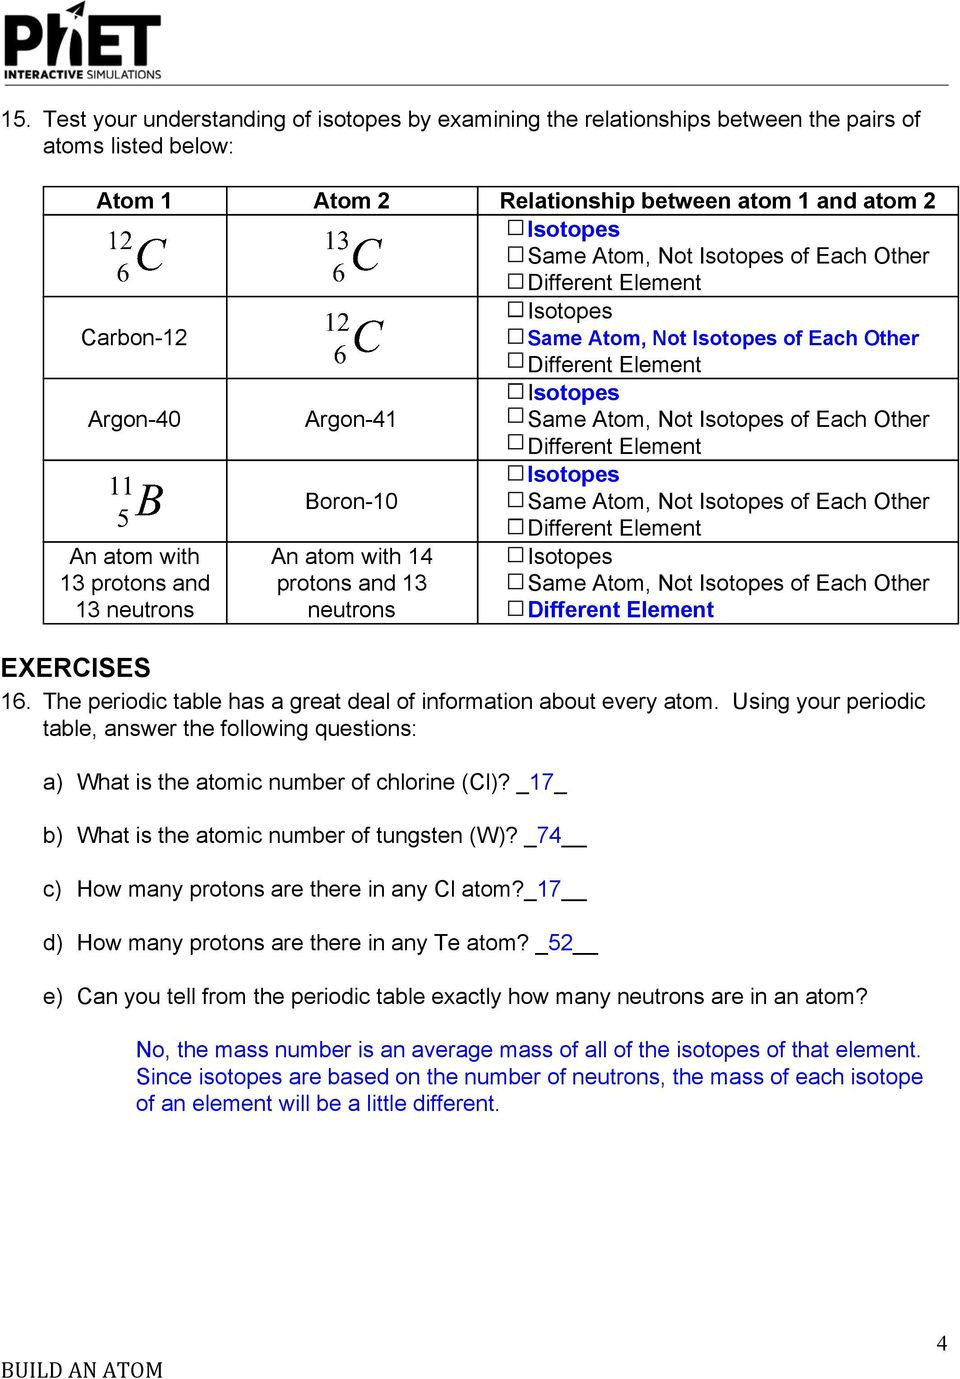 Subatomic Particles Worksheet Answers